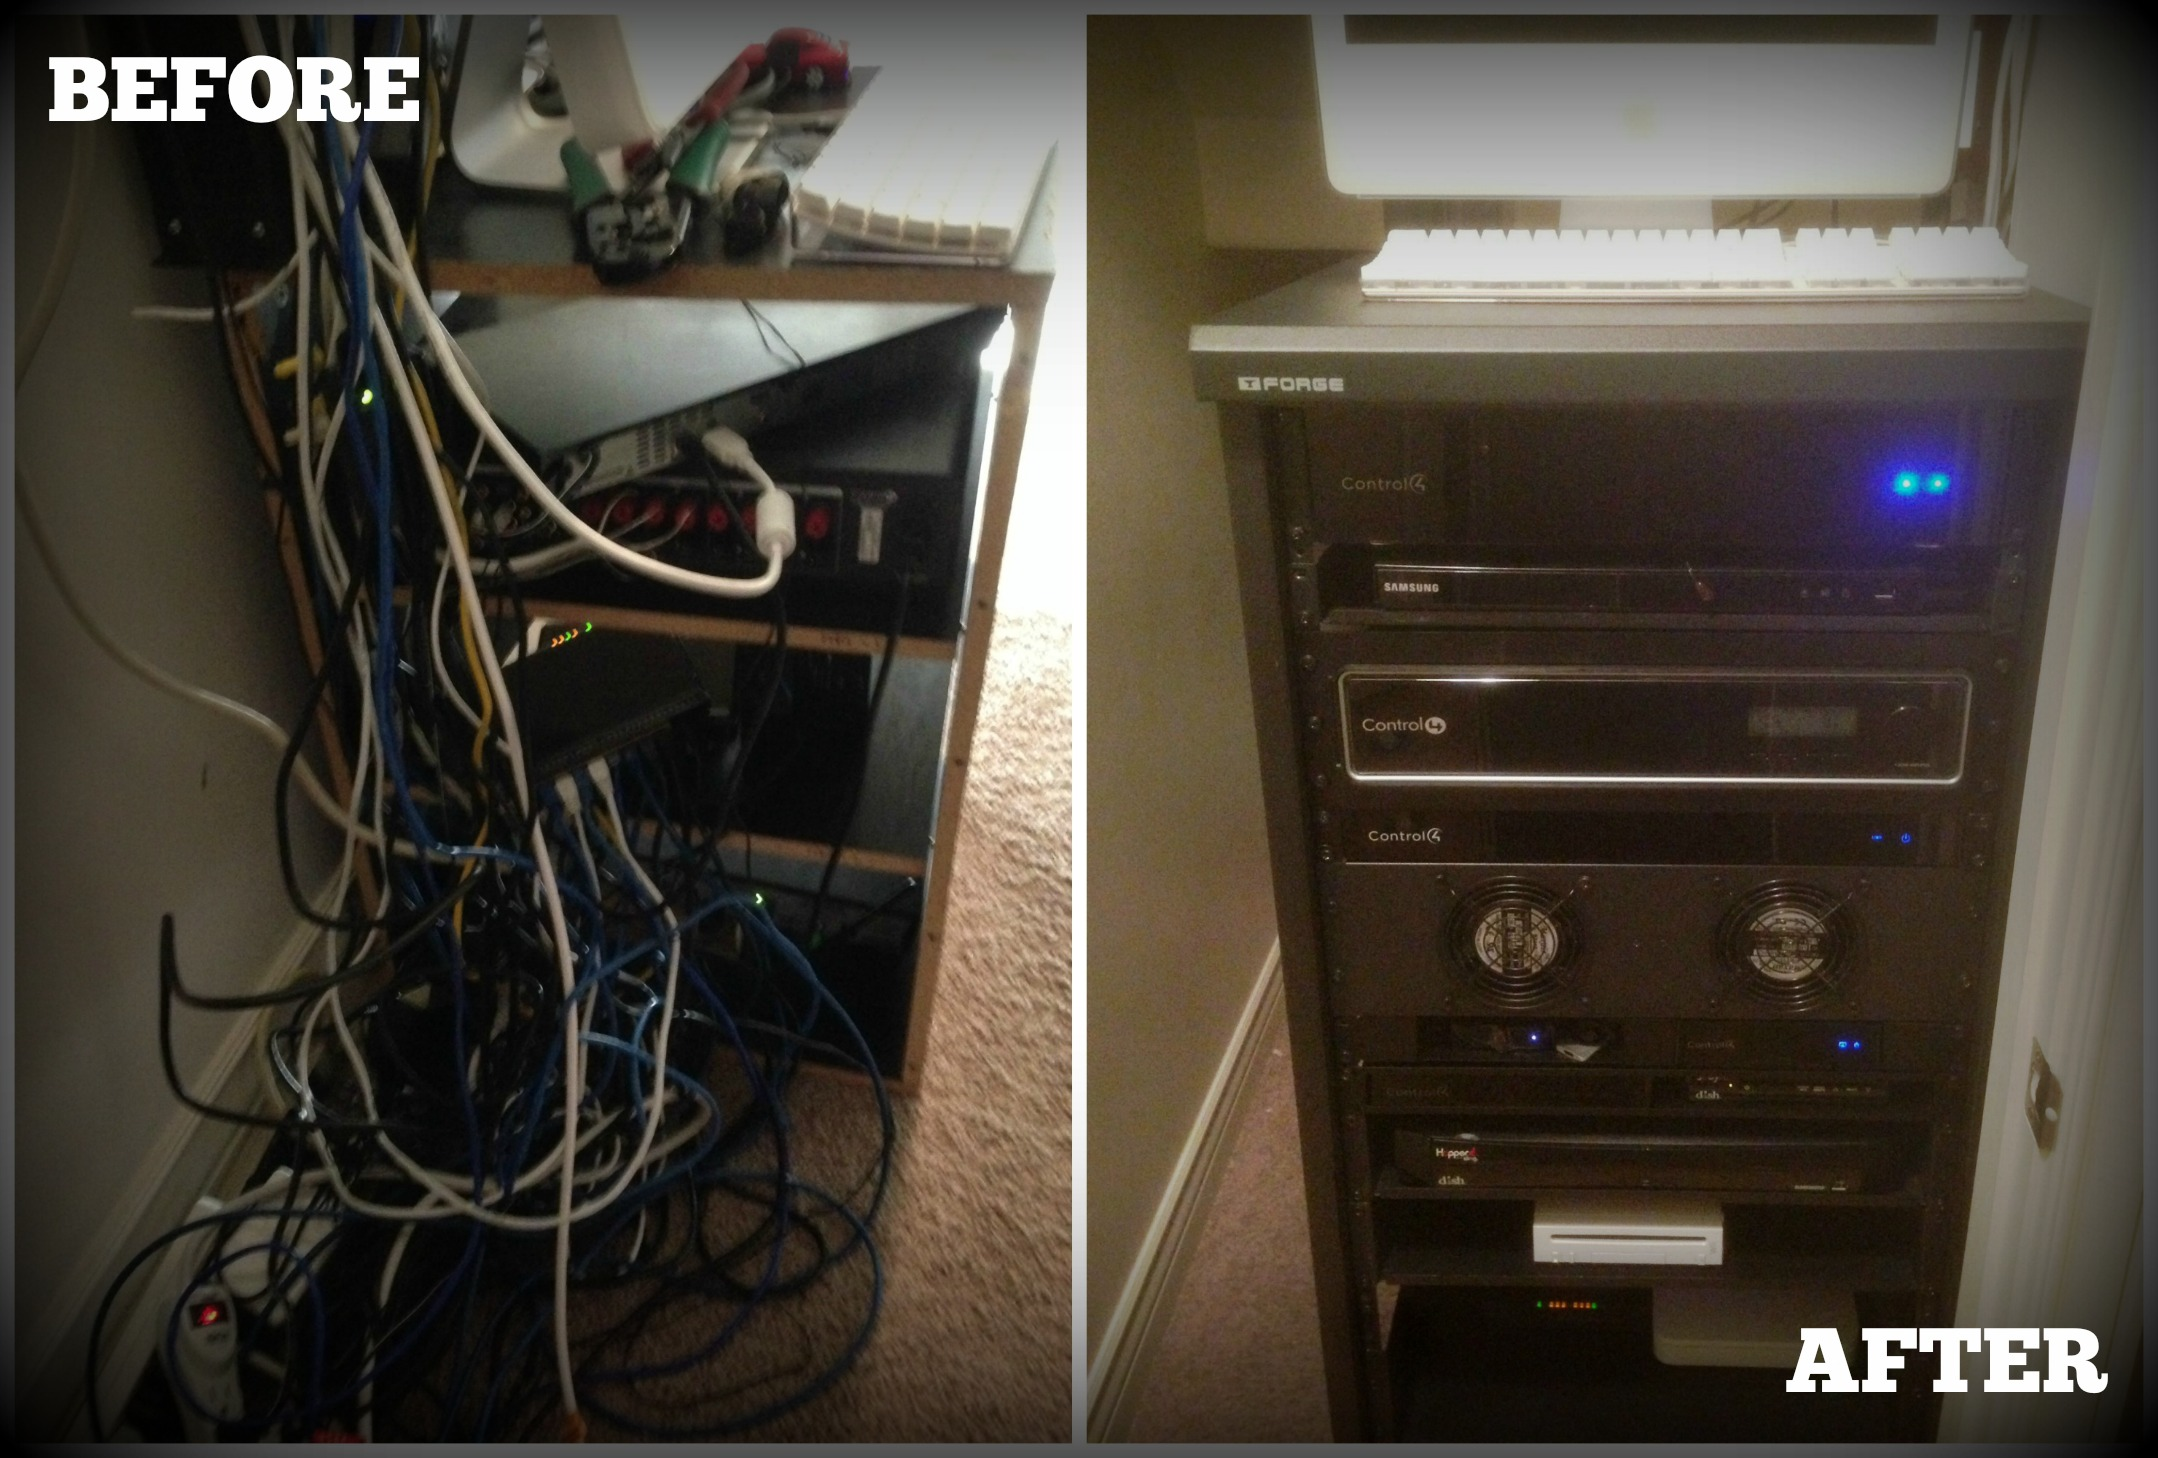 That's One Hot Rack! | Home Automation Blog